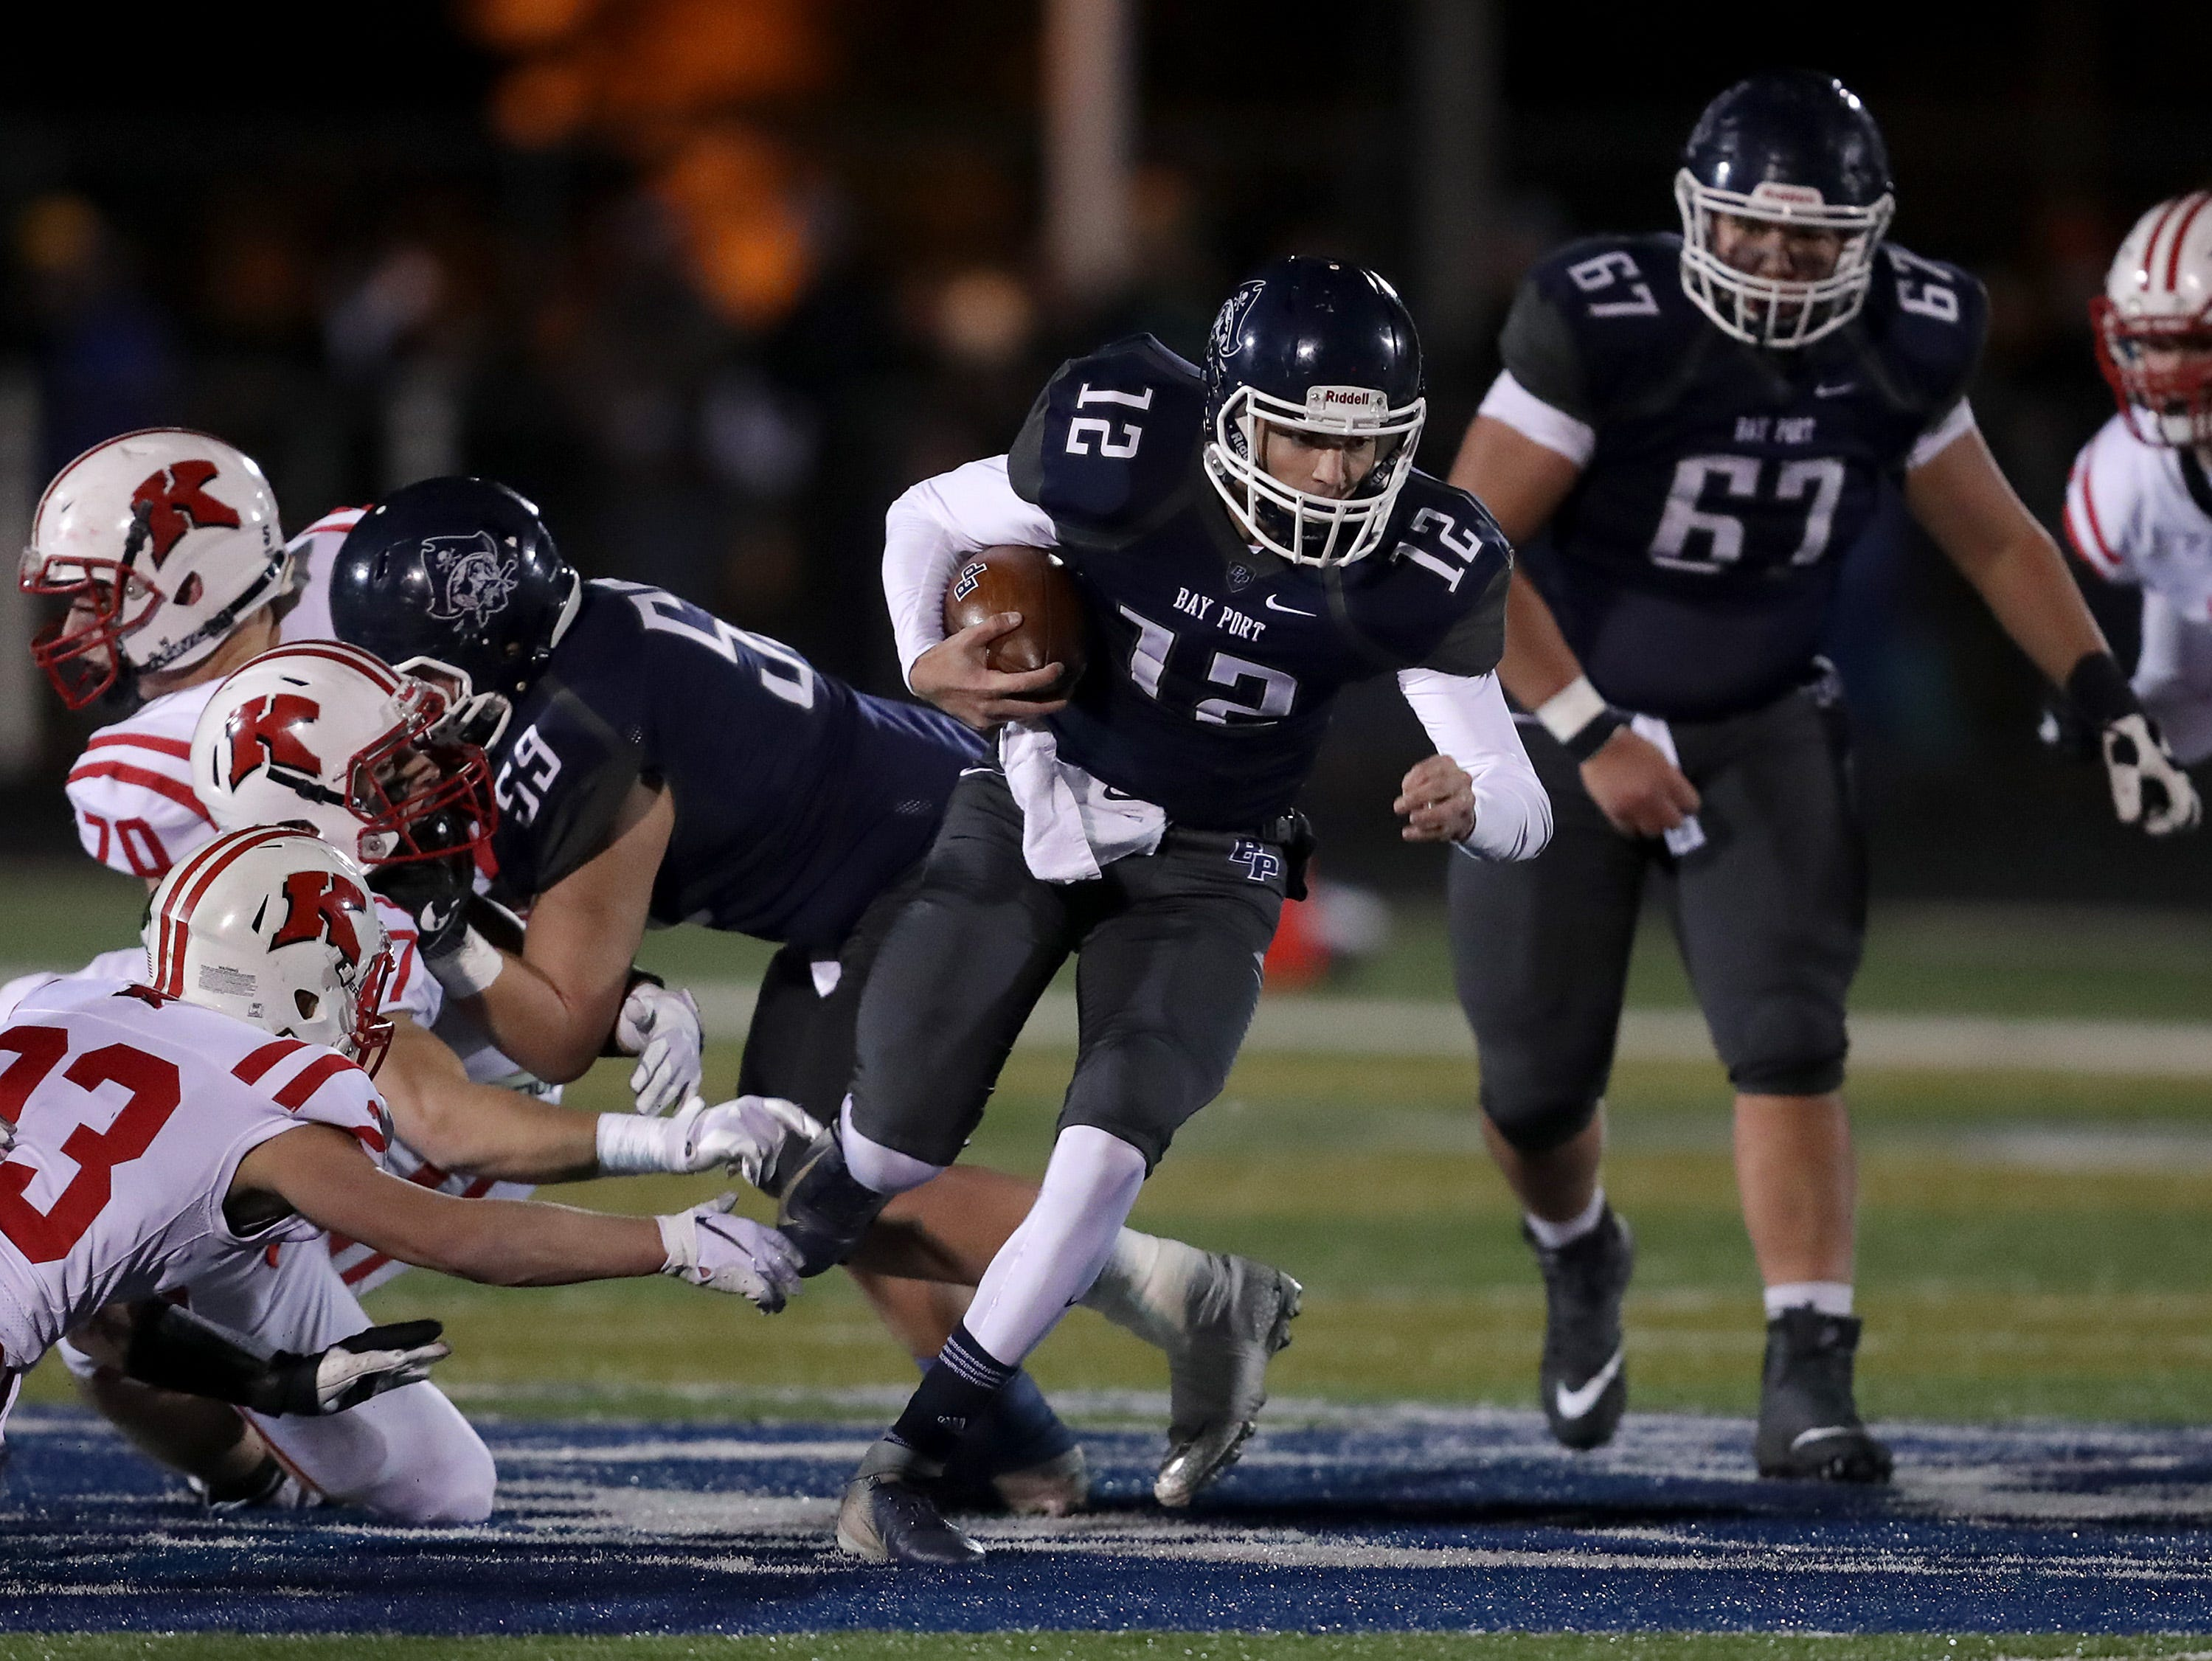 Bay Port High School's #12 Andrew Thomas runs against  Kimberly High School during their WIAA Division 1 state quarterfinal football game on Friday, November 2, 2018, in Suamico, Wis.  Kimberly defeated Bay Port 38 to 20. Wm. Glasheen/USA TODAY NETWORK-Wisconsin.